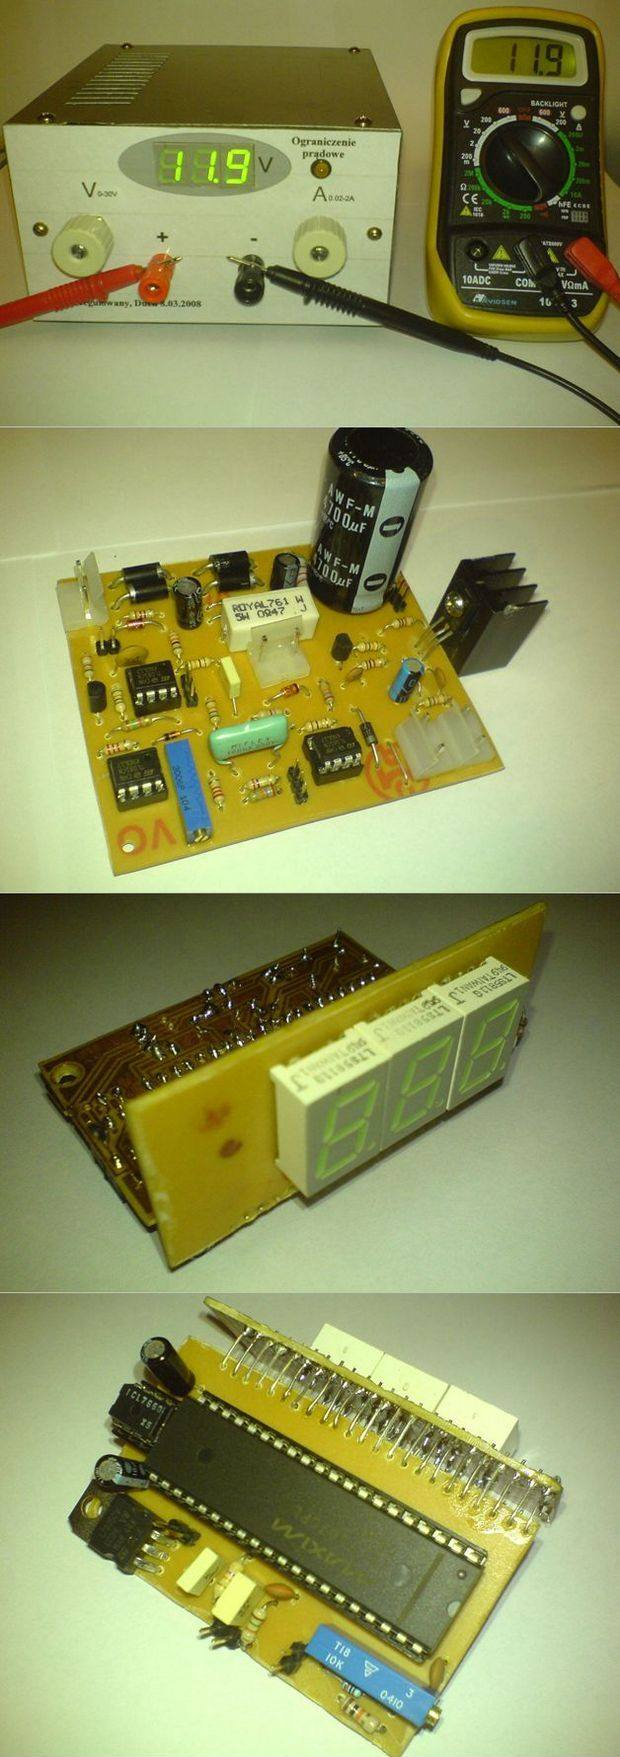 0 2a 30v Regulated Power Supply Circuit Electronics Projects Diagram Icl7107x Ayarli Guc Kaynagi Lab